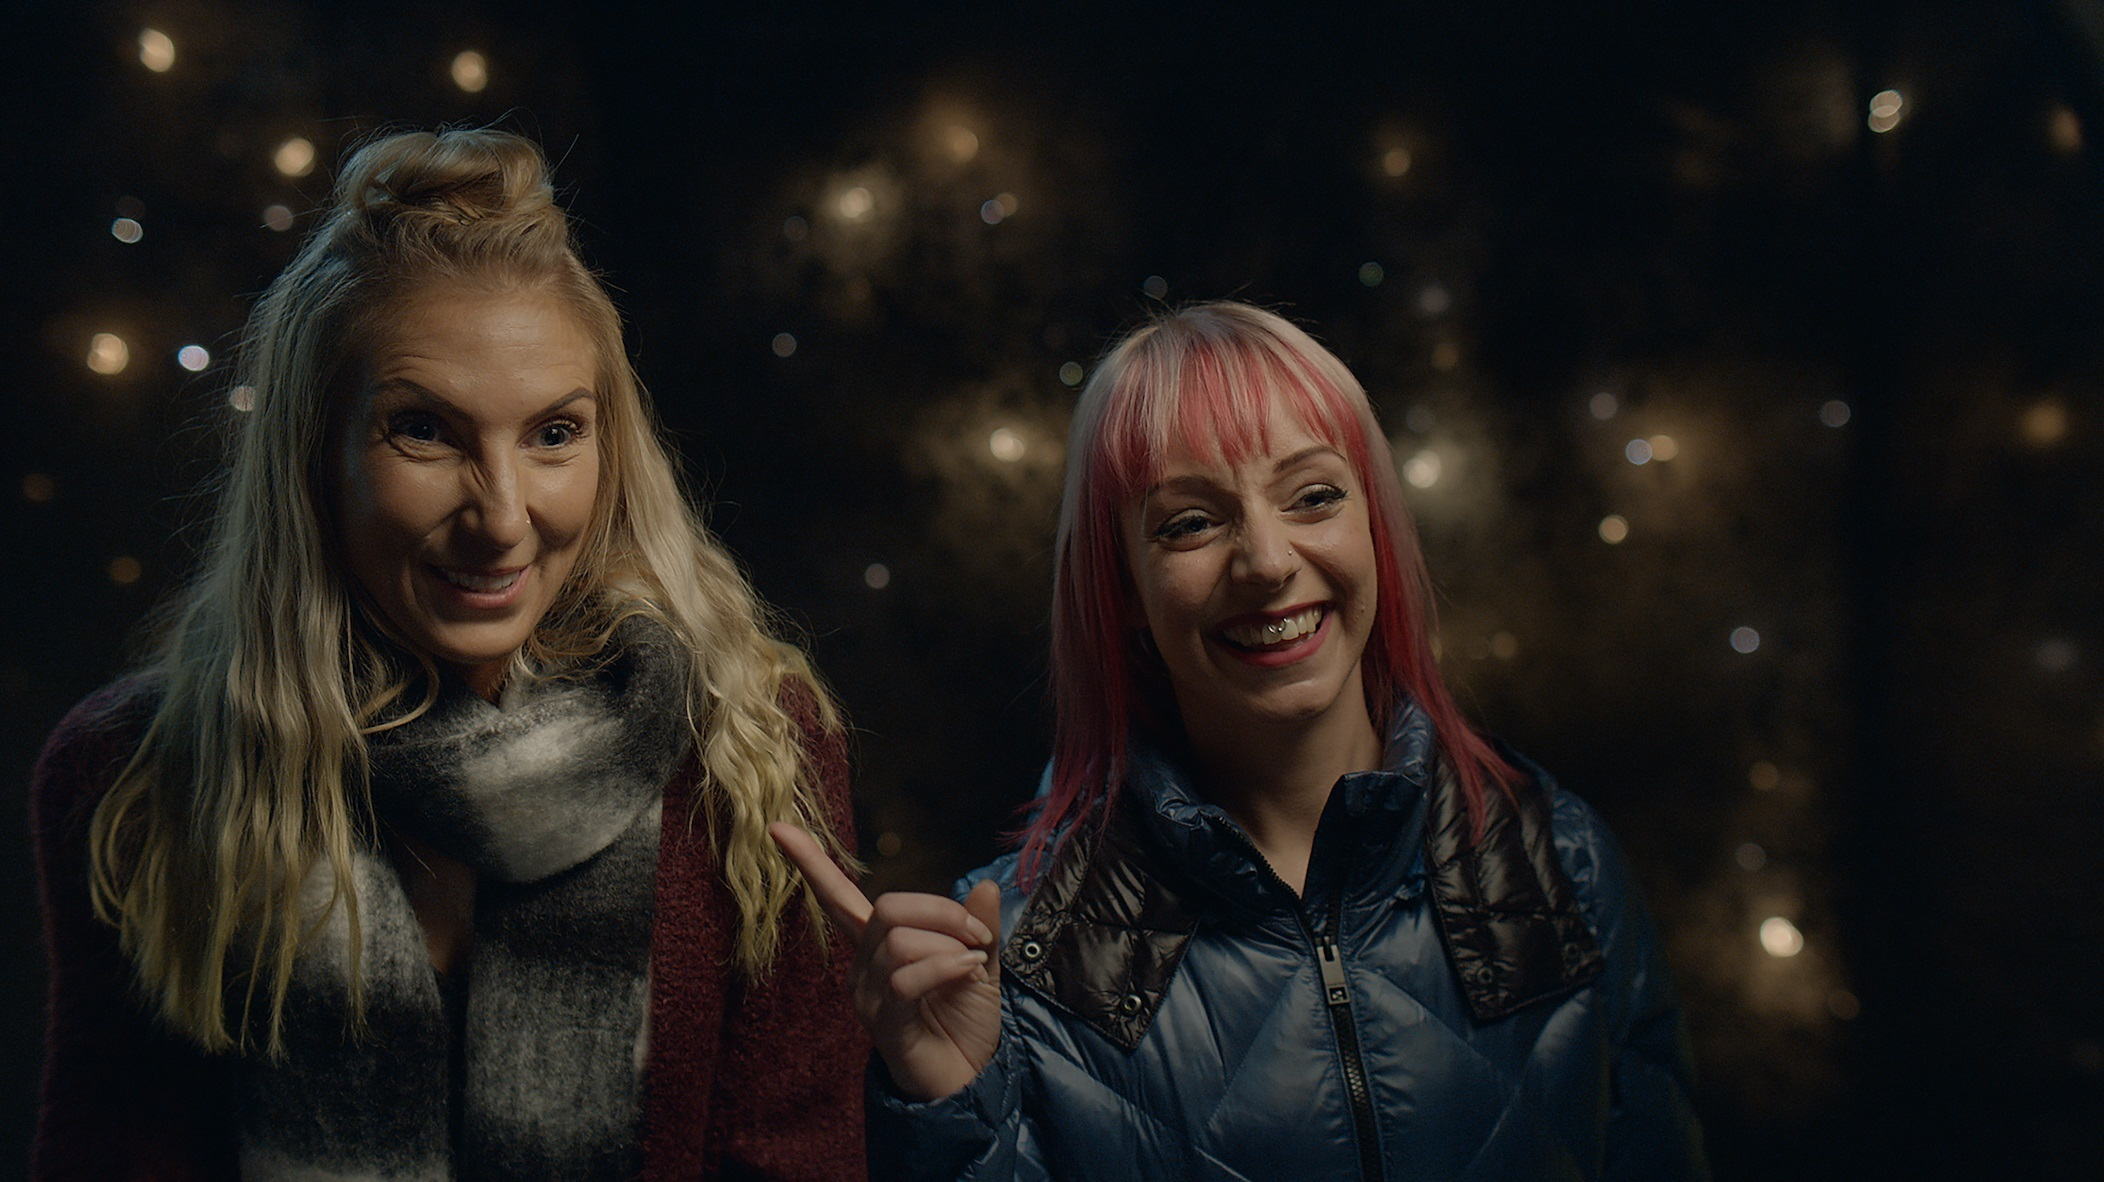 Jenny from Redditch (left) is featured in a range of ads coming out over the festive period